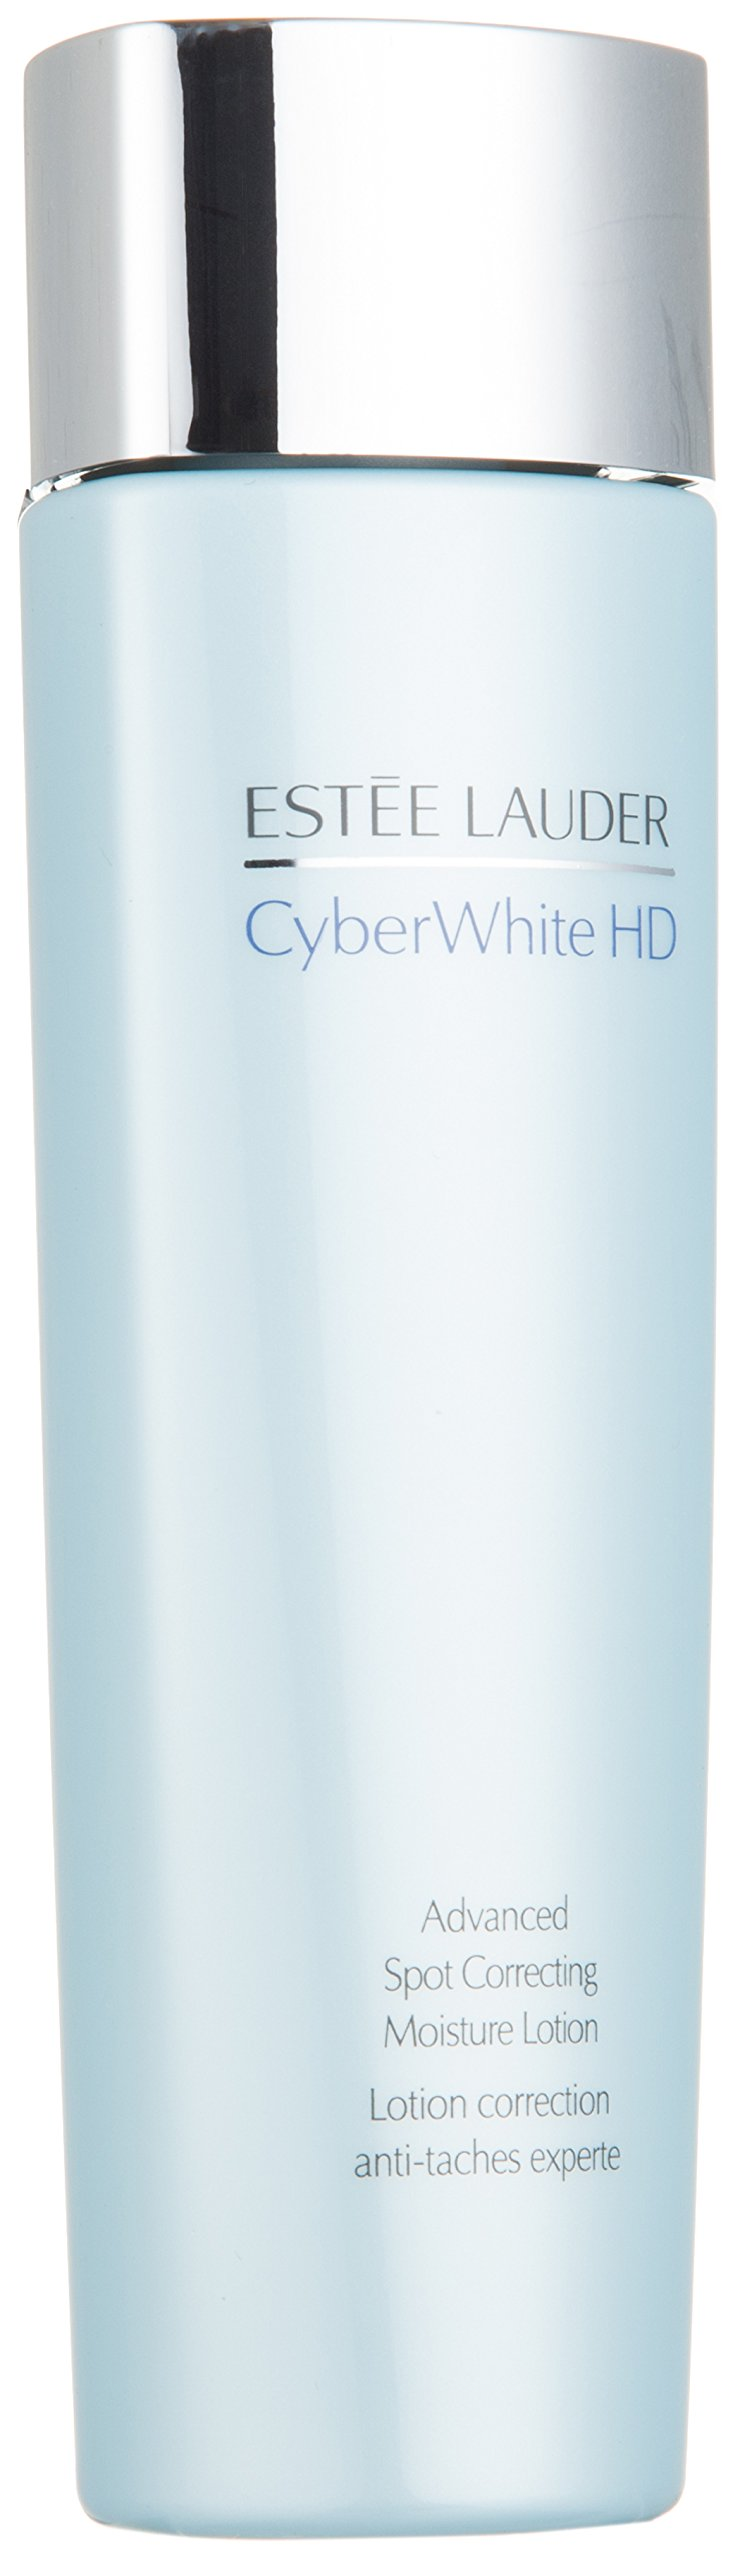 Estée Lauder CyberWhite HD Advanced Spot Correcting Moisture Lotion Fresh Moist, 200ml, 6.7oz